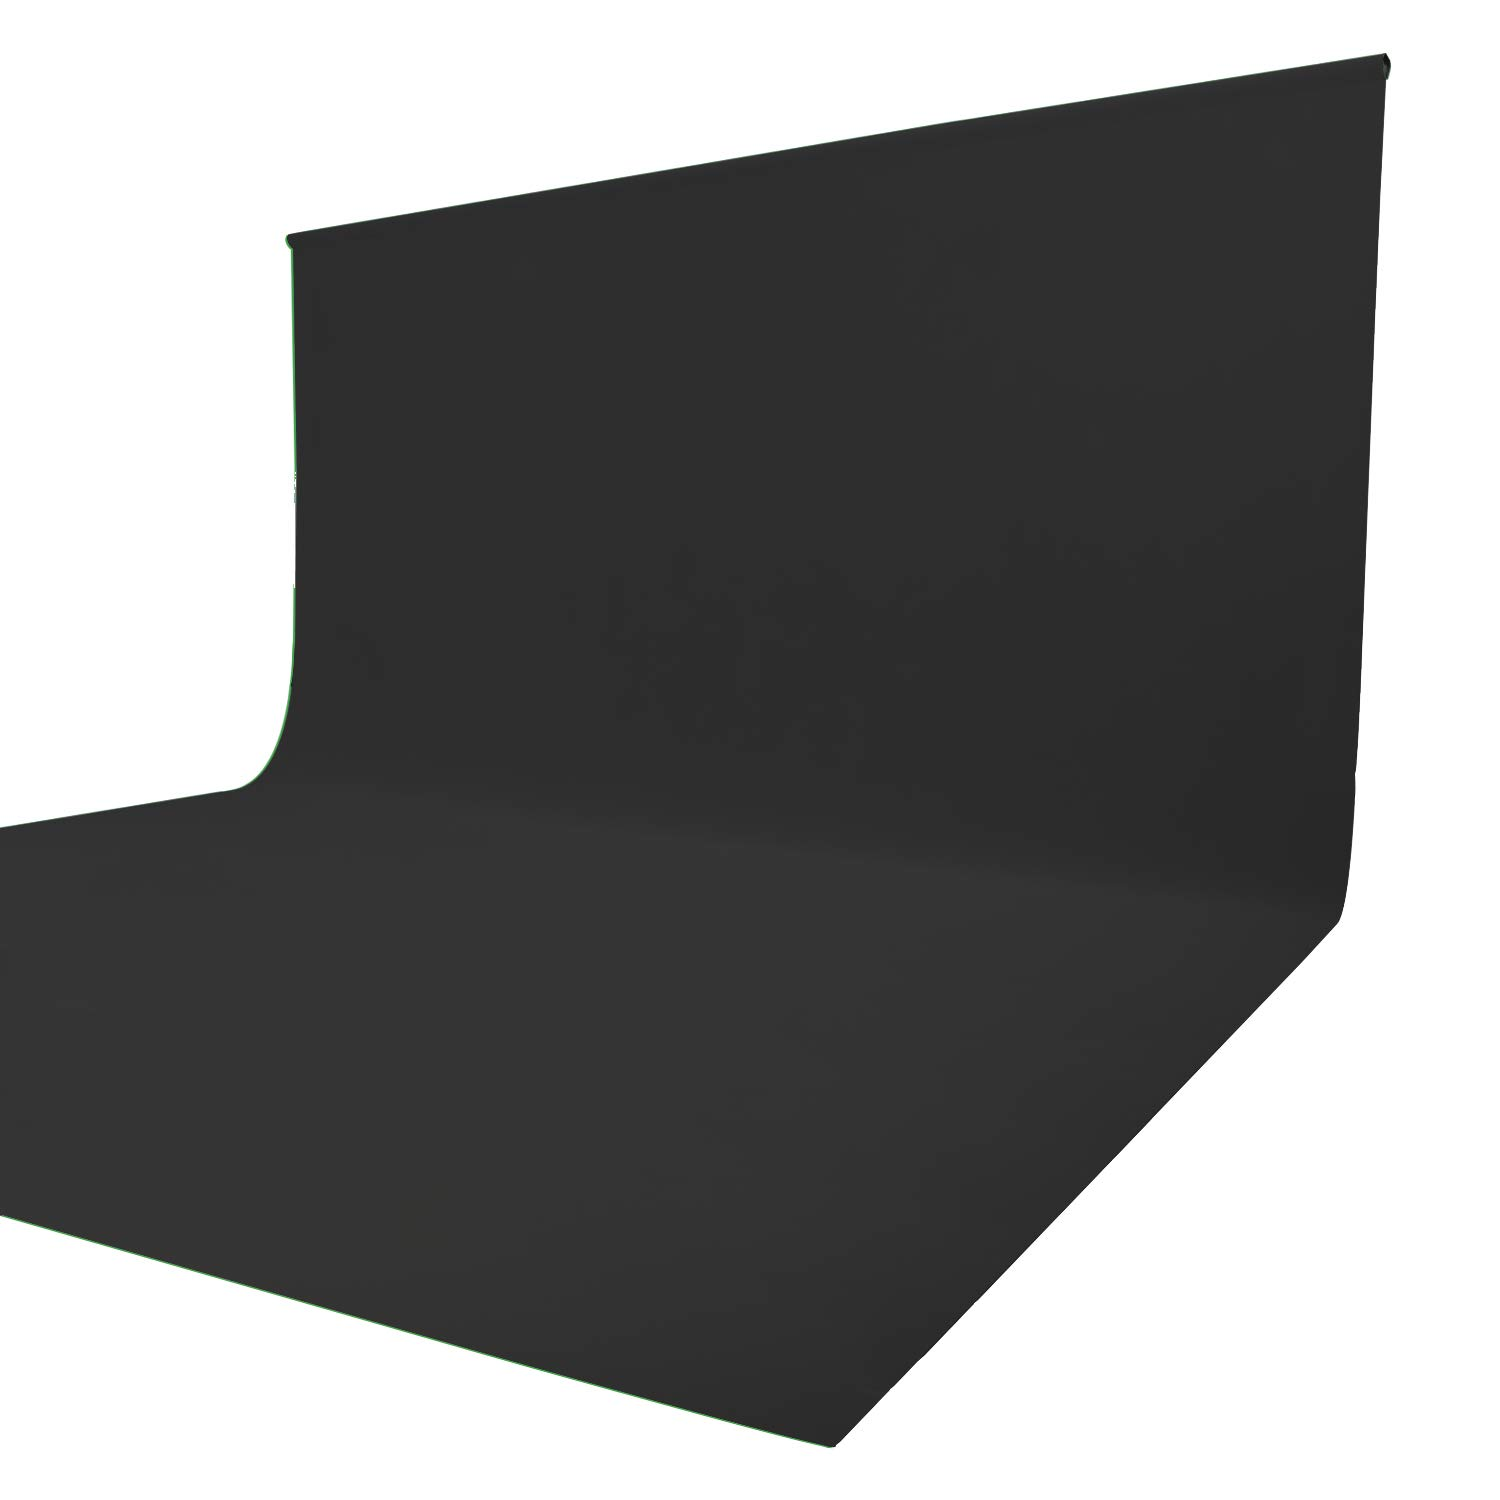 Issuntex 10X12 ft Black Background Muslin Backdrop,Photo Studio,Collapsible High Density Screen for Video Photography and Television